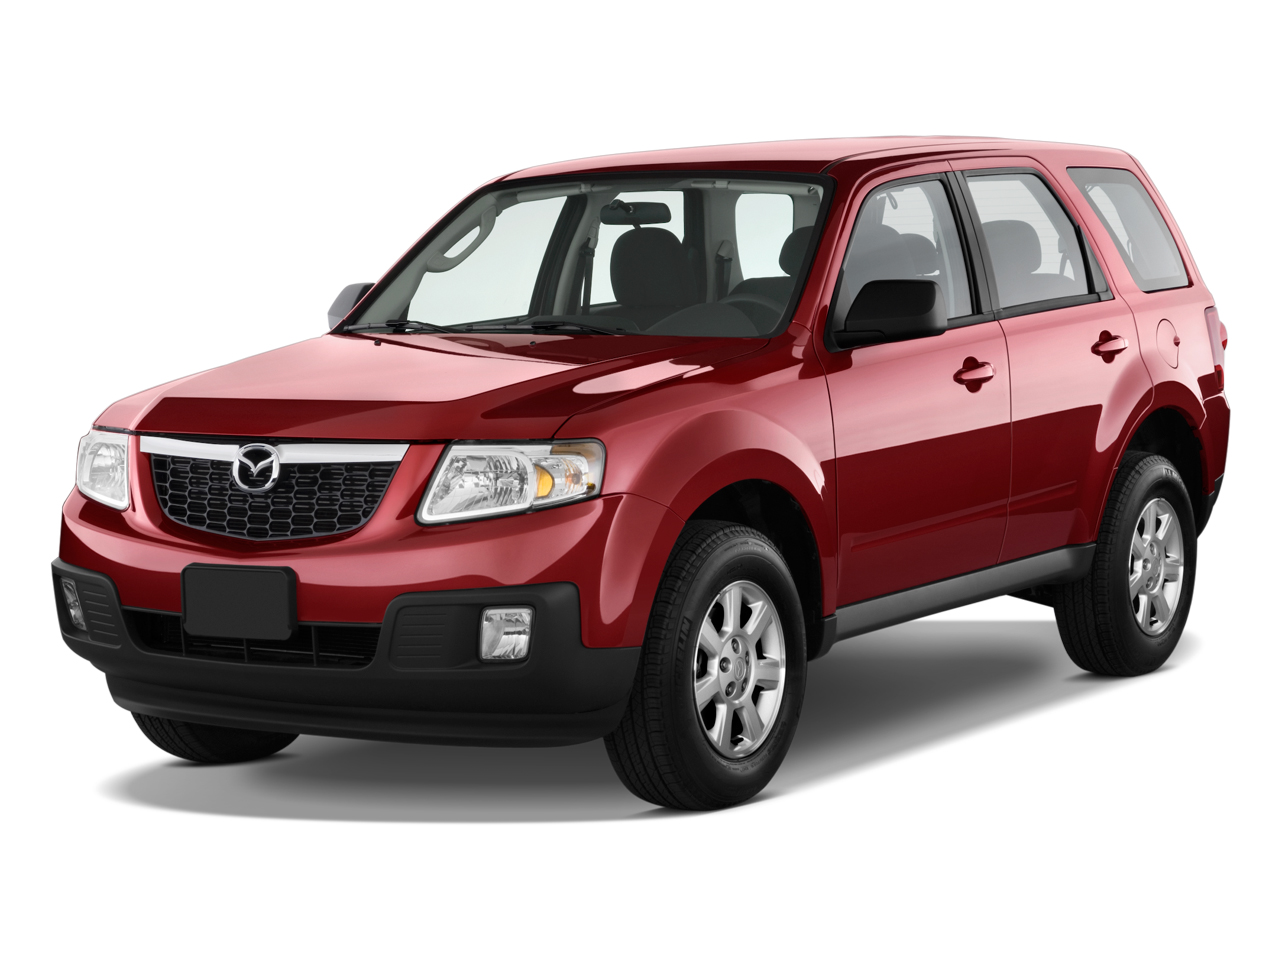 new and used mazda tribute prices photos reviews specs the car connection. Black Bedroom Furniture Sets. Home Design Ideas